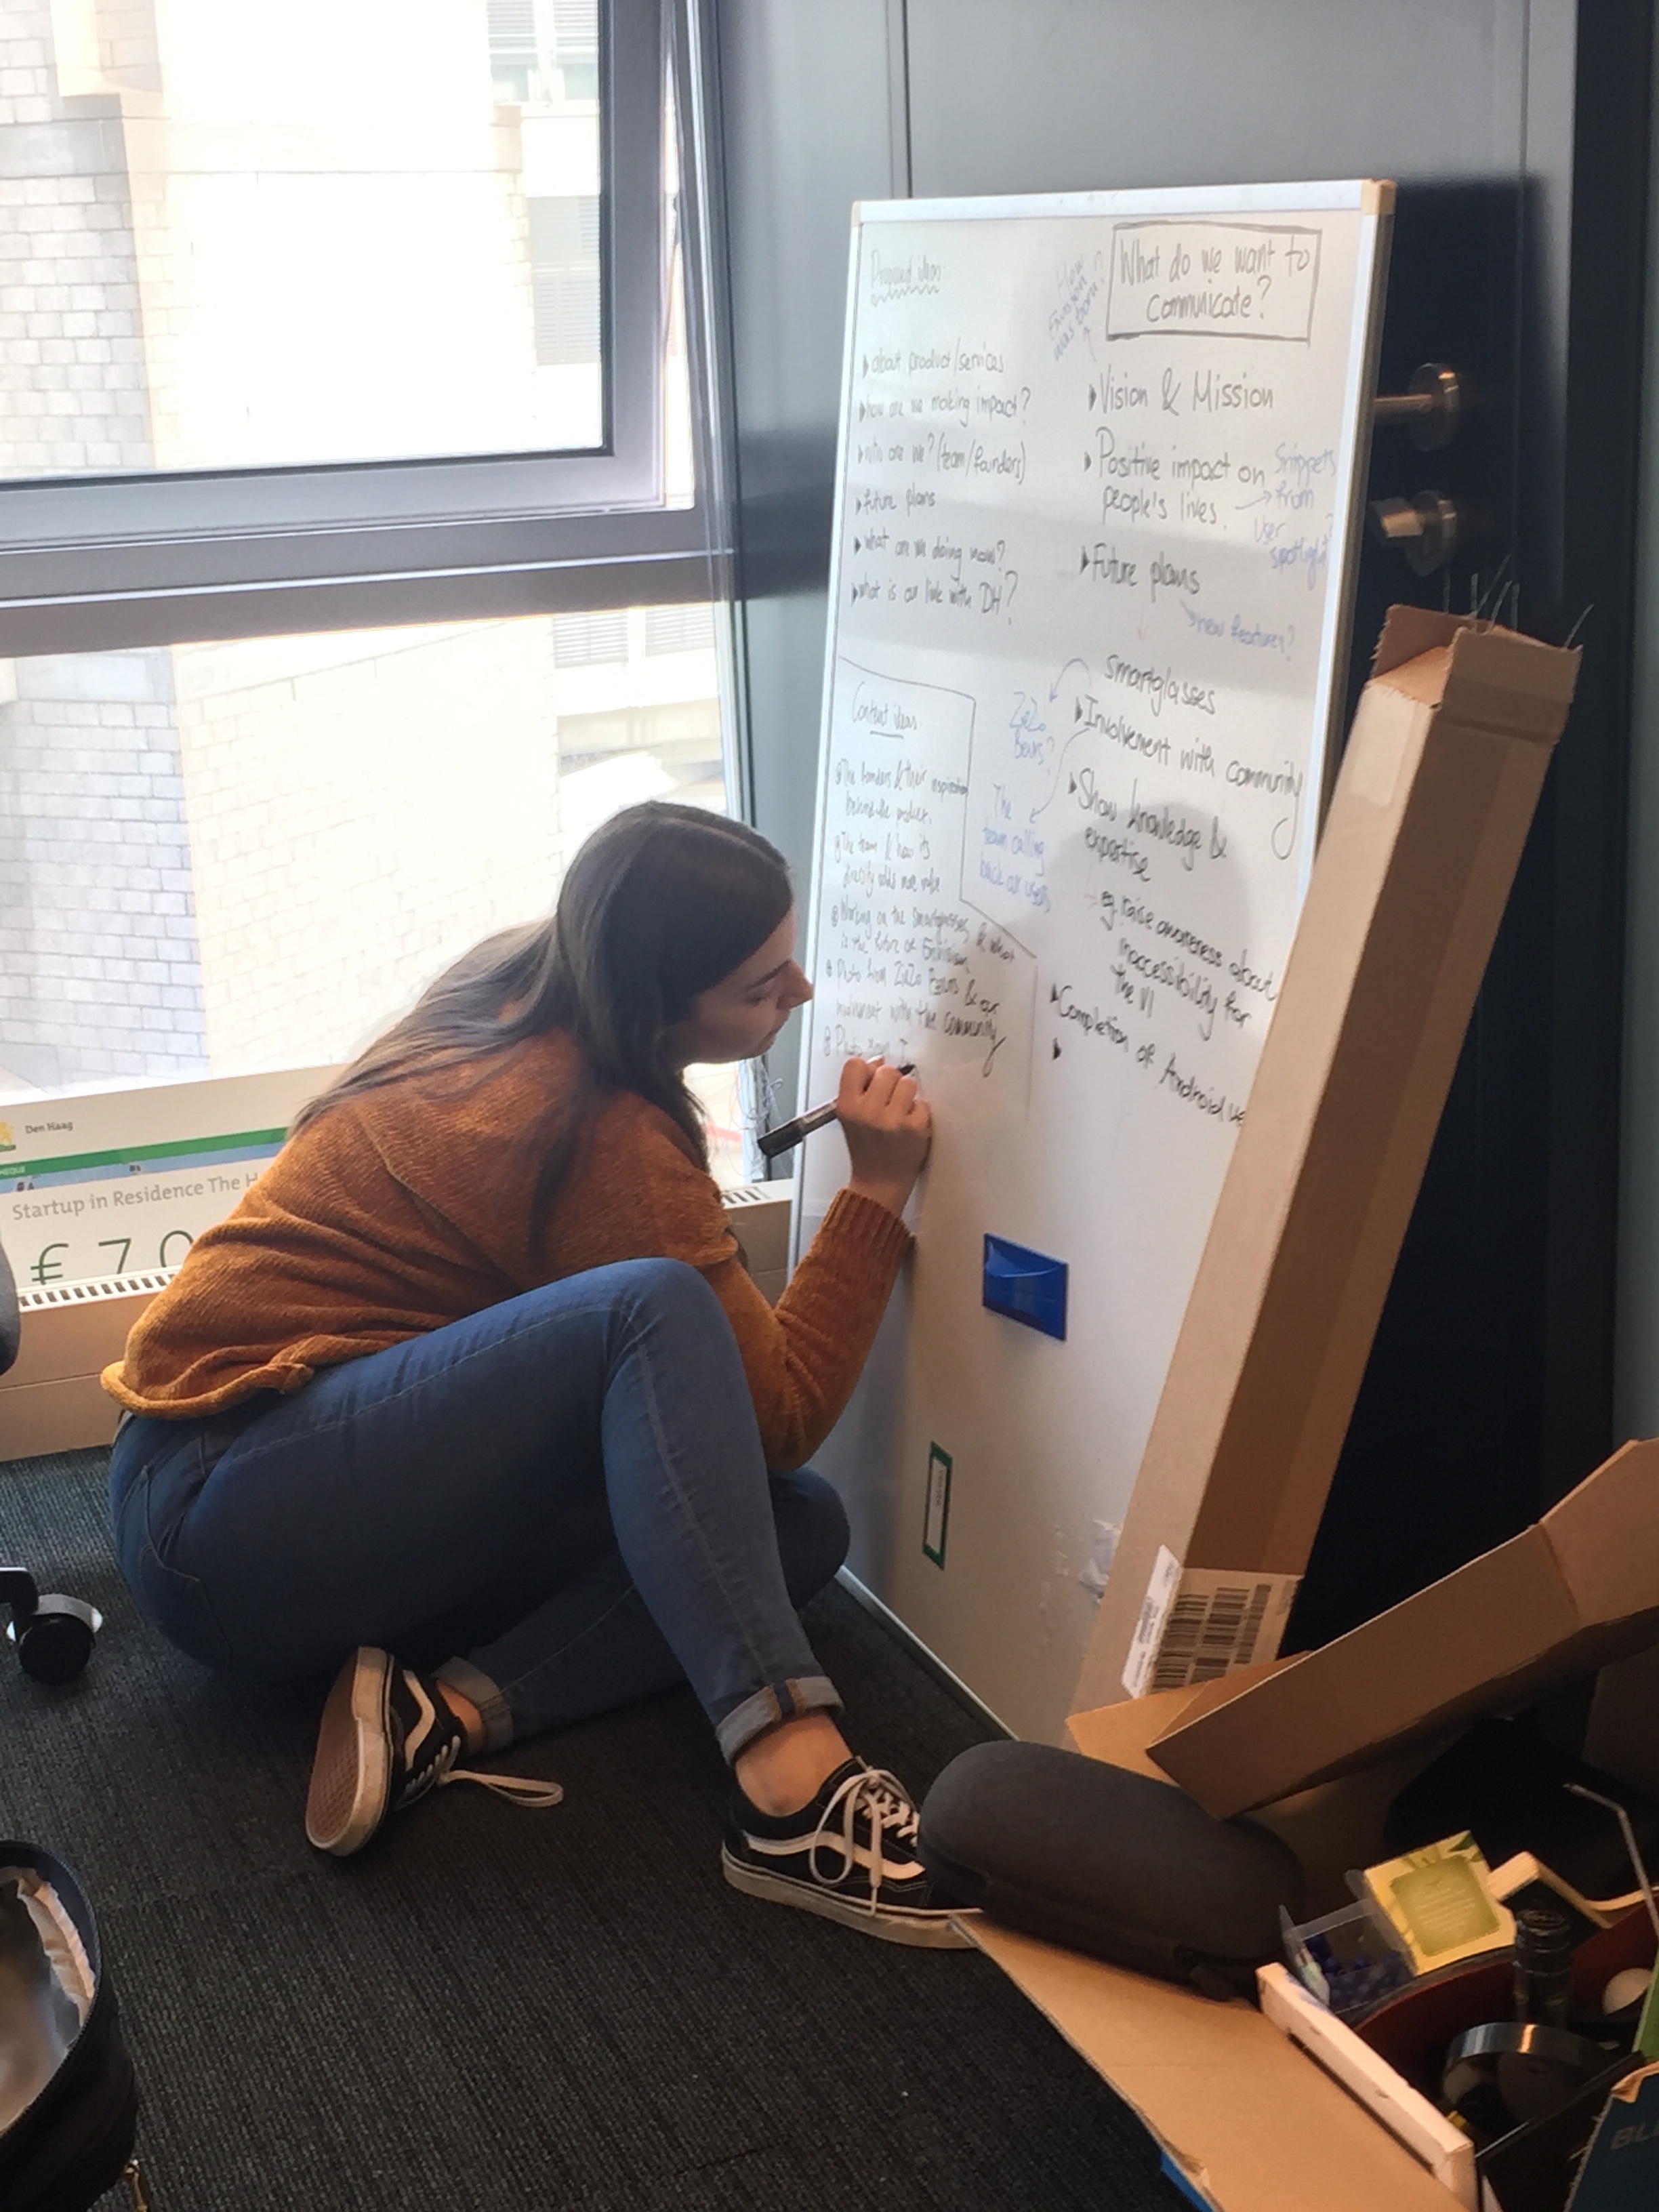 Dafni writing down her marketing ideas on a whiteboard while sitting on the floor